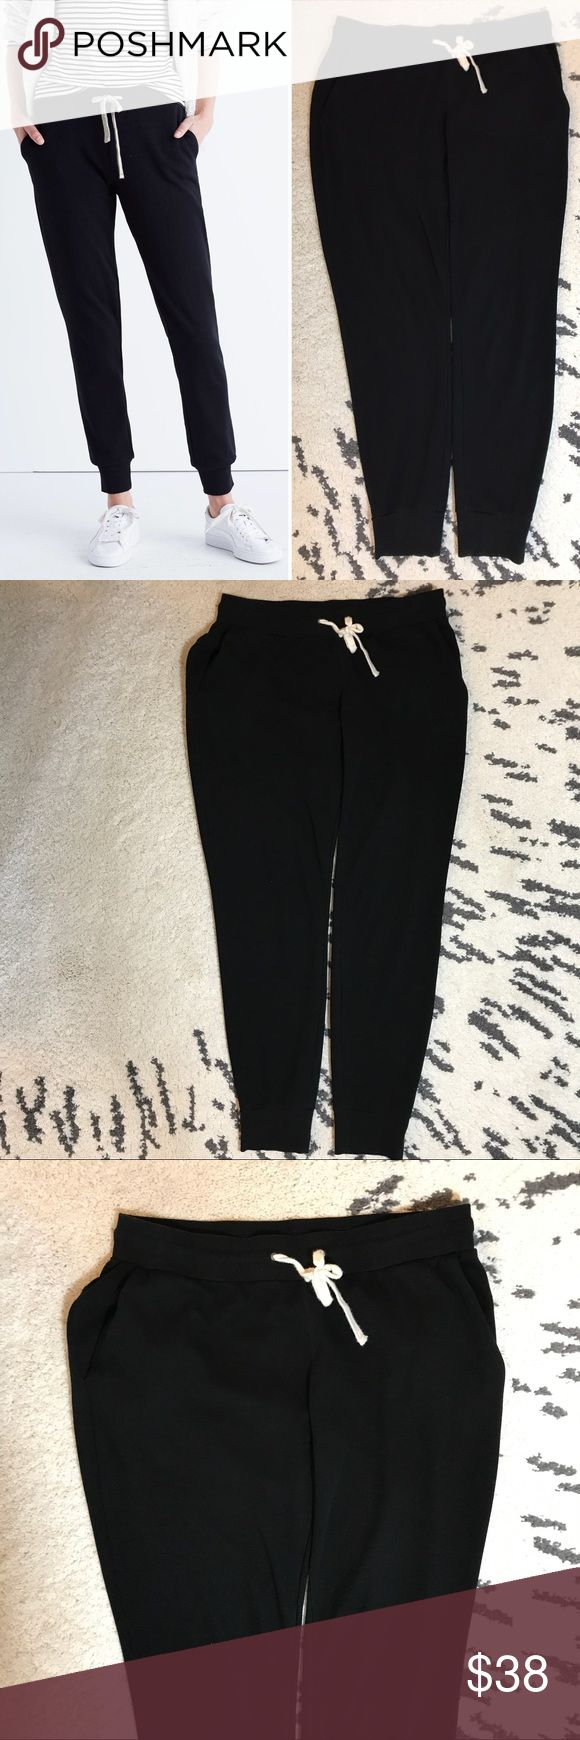 """Madewell Offline Slim Sweatpants I purchased these in December 2016 and am realizing these are too big for me. Madewell claims they run true to size but I think they are a bit large. I guess it depends on how tight/loose pants to be around the legs. Gently worn, great condition. No pilling; I don't think this type of fabric pills. Super comfortable. Made of 88% cotton and 12% polyamide. Still for sale on the Madewell website. Waist is ~ 15"""" without stretching the waistband and inseam is 30""""…"""